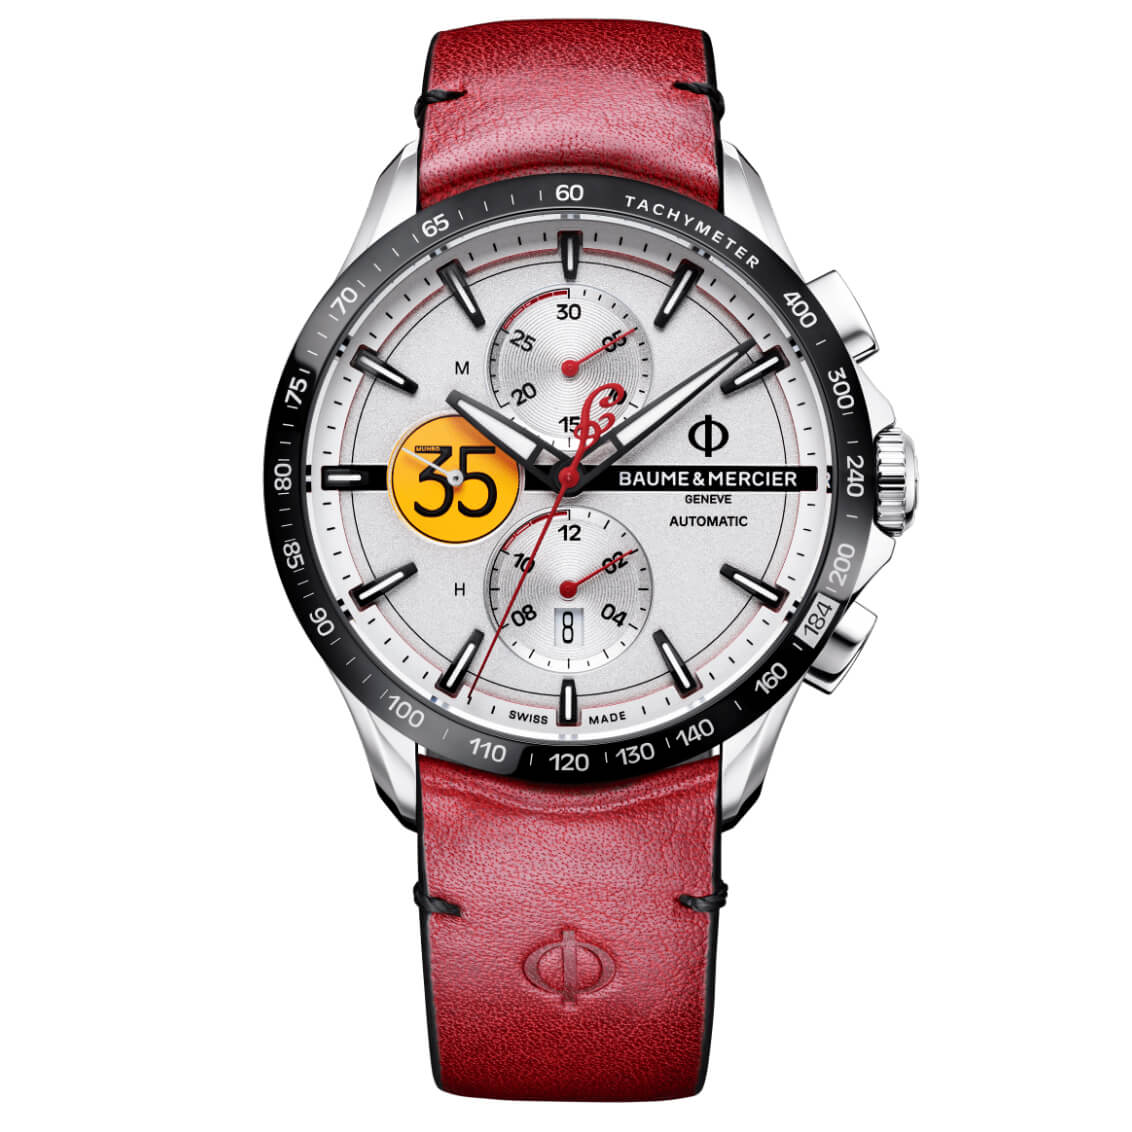 Baume & Mercier Clifton Club Burt Munro Tribute 7